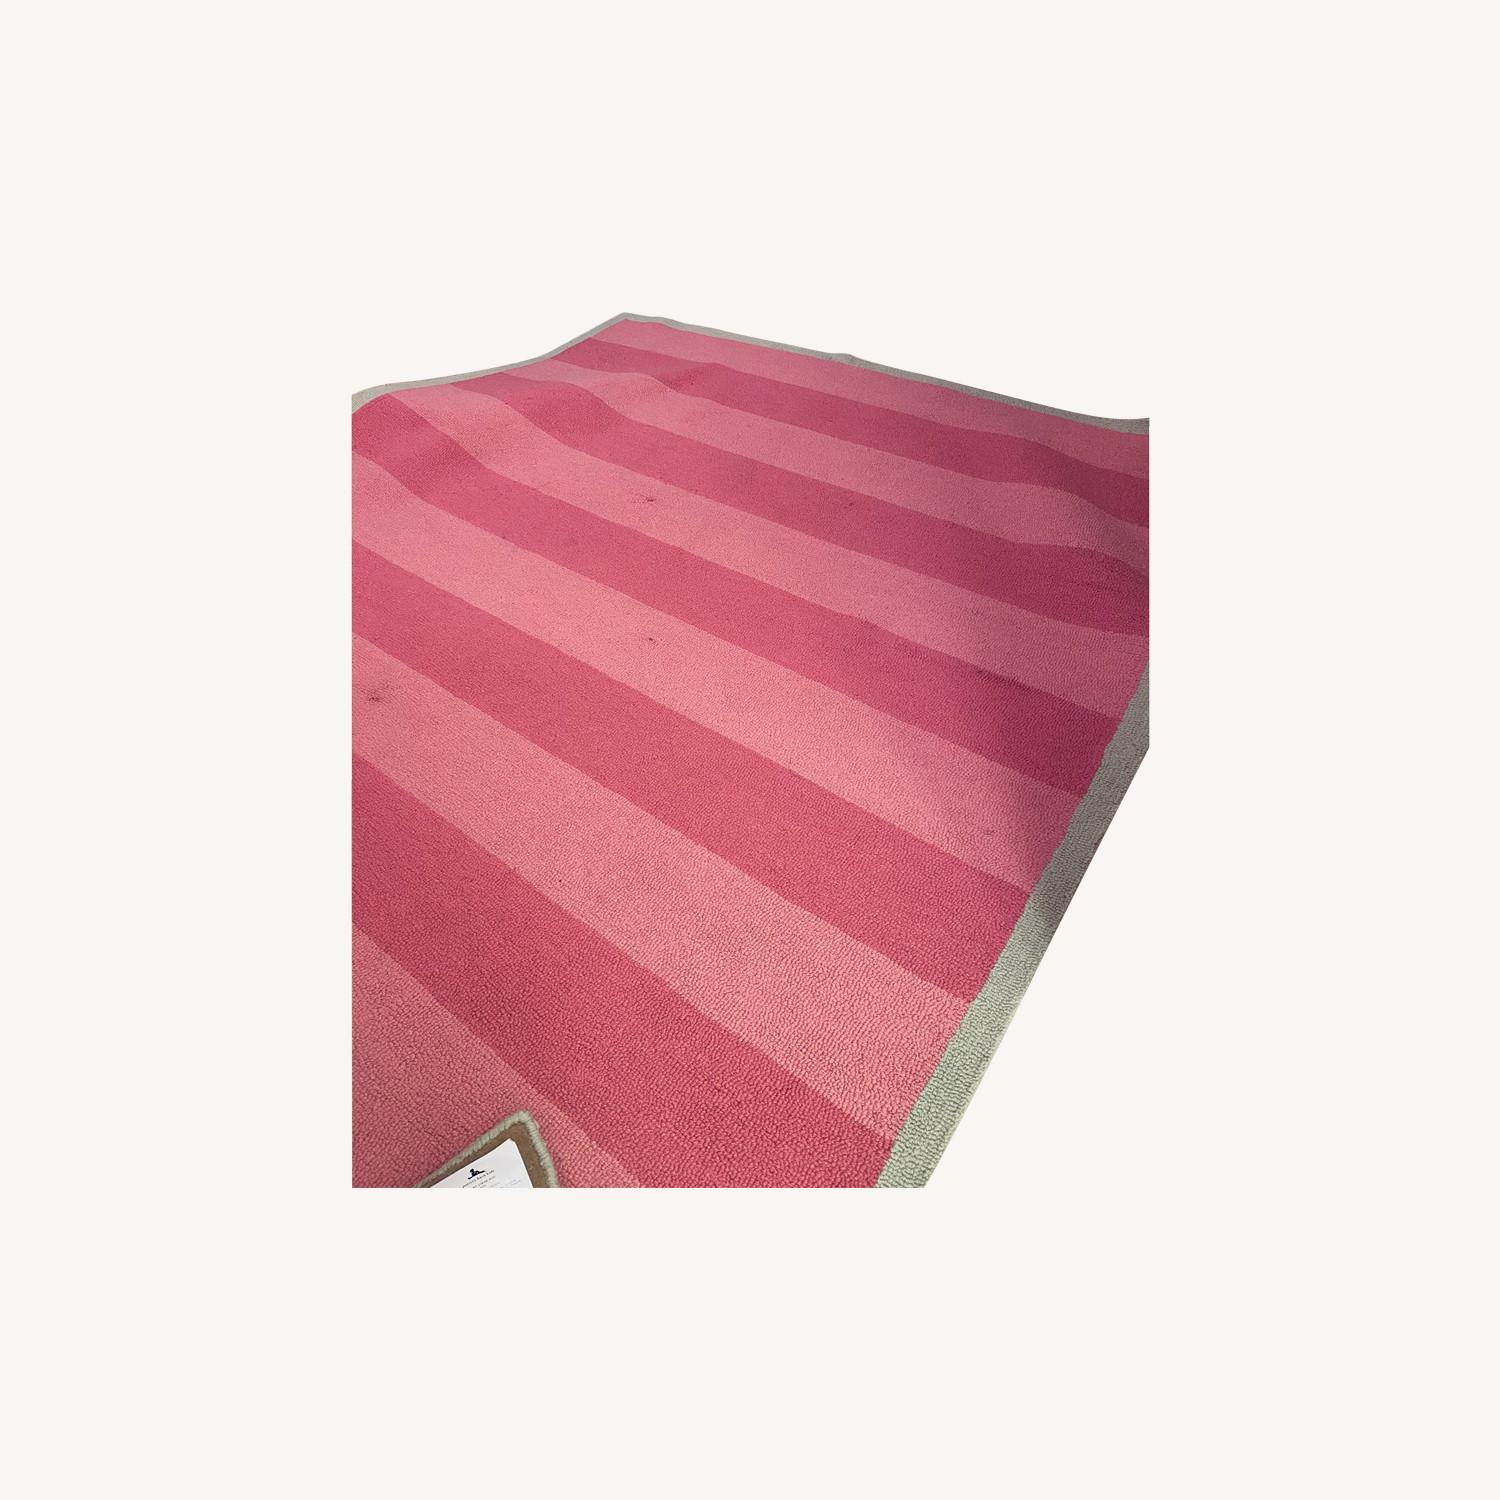 Pottery Barn Kids Pink and Green Striped Rug - image-0